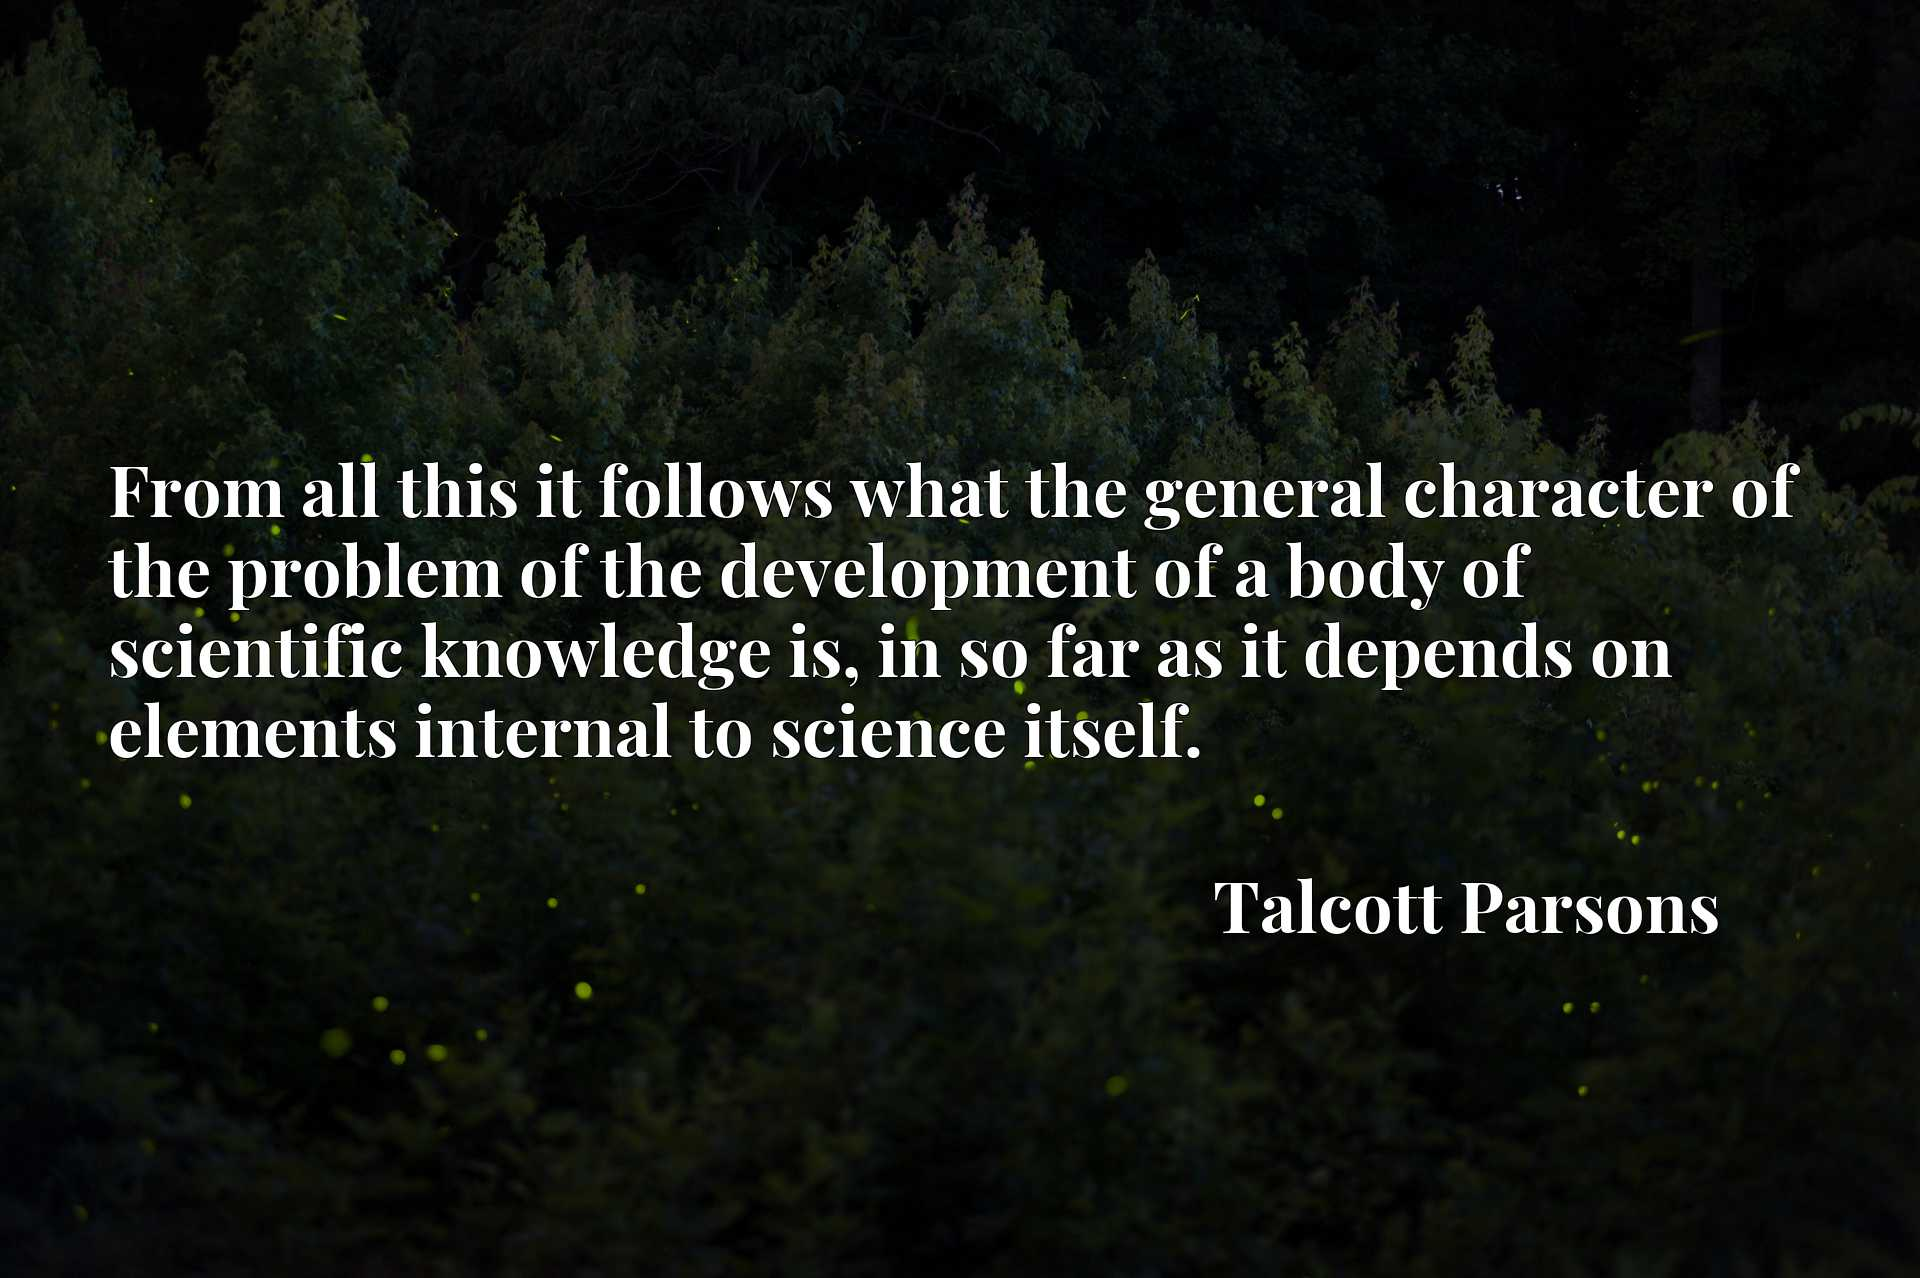 Quote Picture :From all this it follows what the general character of the problem of the development of a body of scientific knowledge is, in so far as it depends on elements internal to science itself.